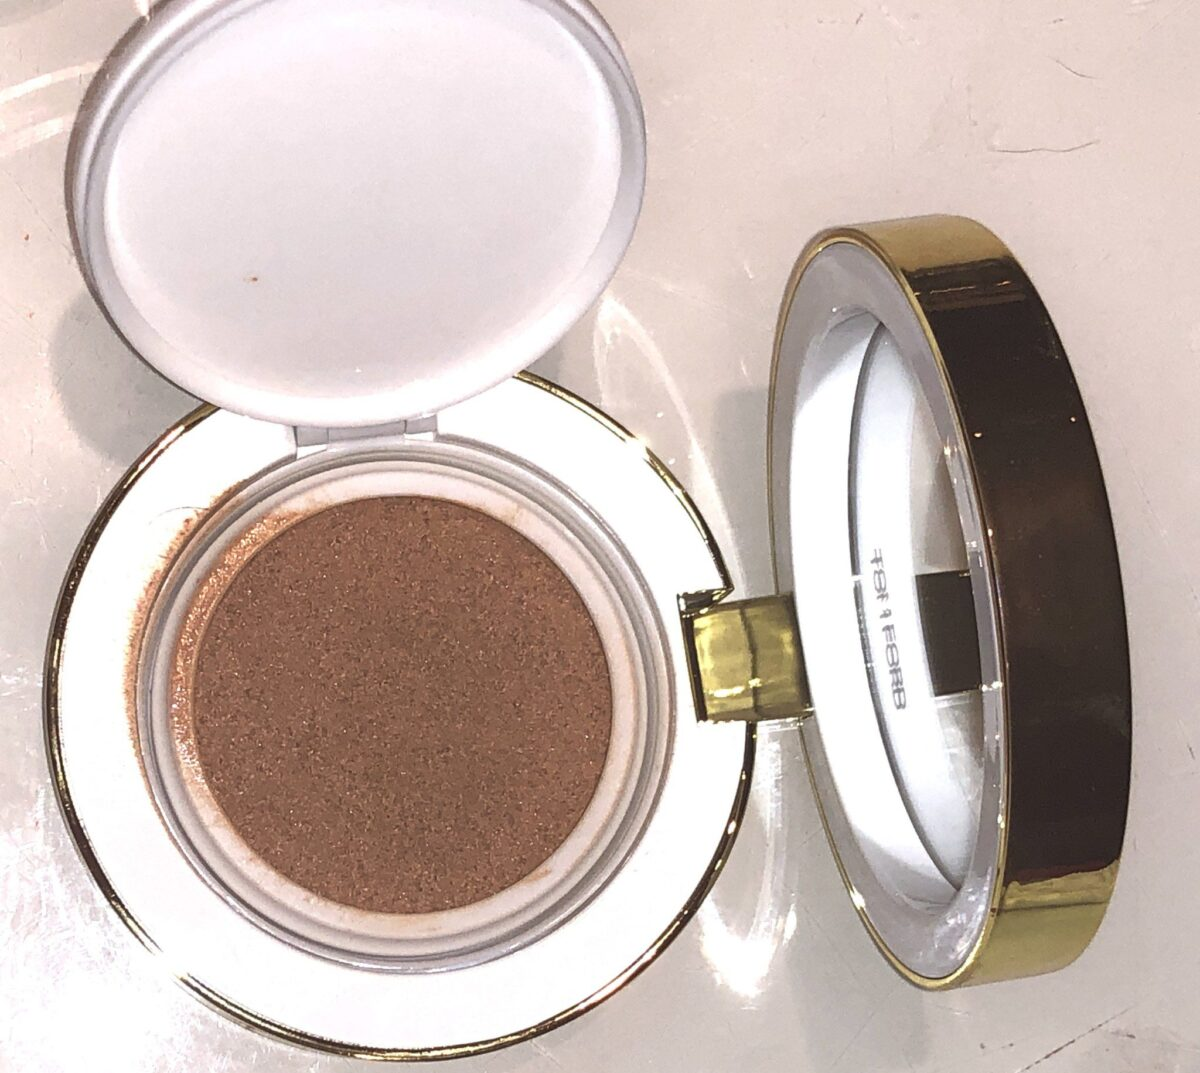 TOM FORD SOLEIL GLOW HYDRATING CUSHION COMPACT IN WAQRM BRONZE